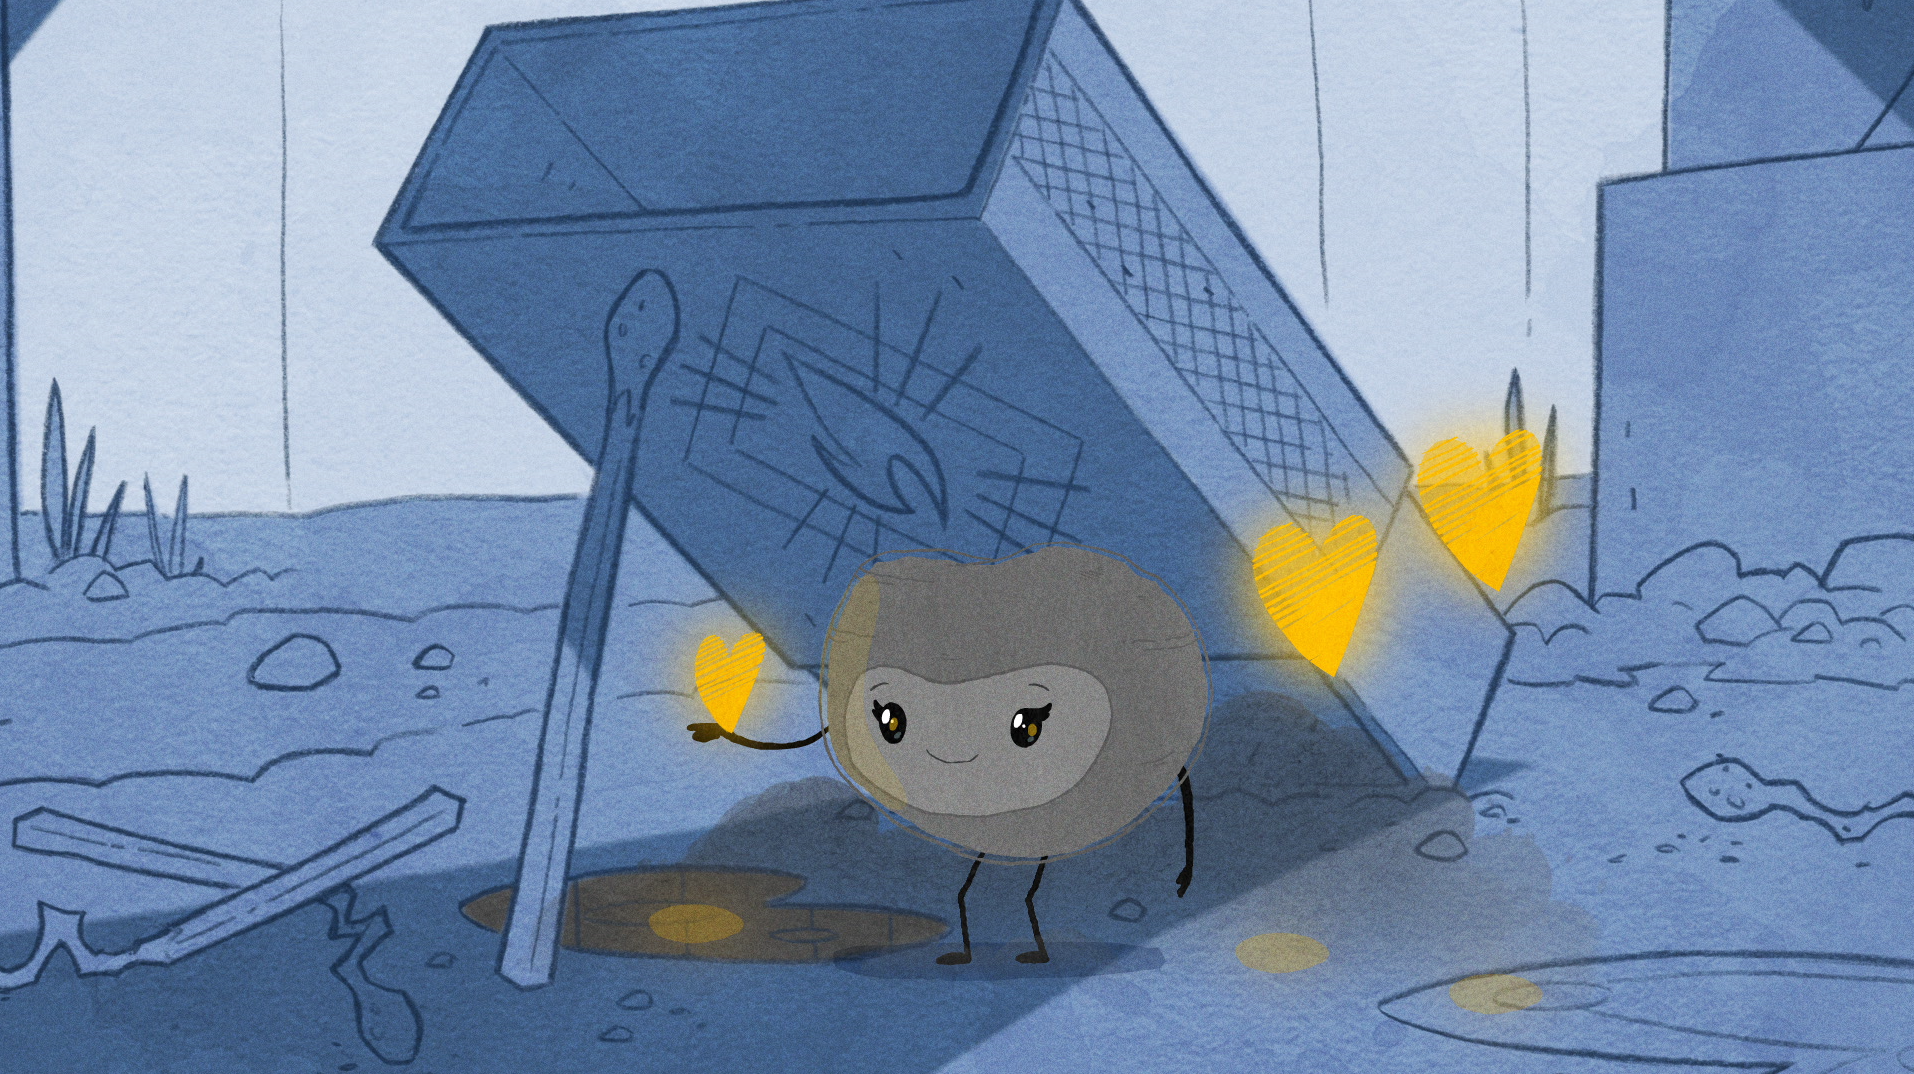 Shining Light on Homelessness through Animation